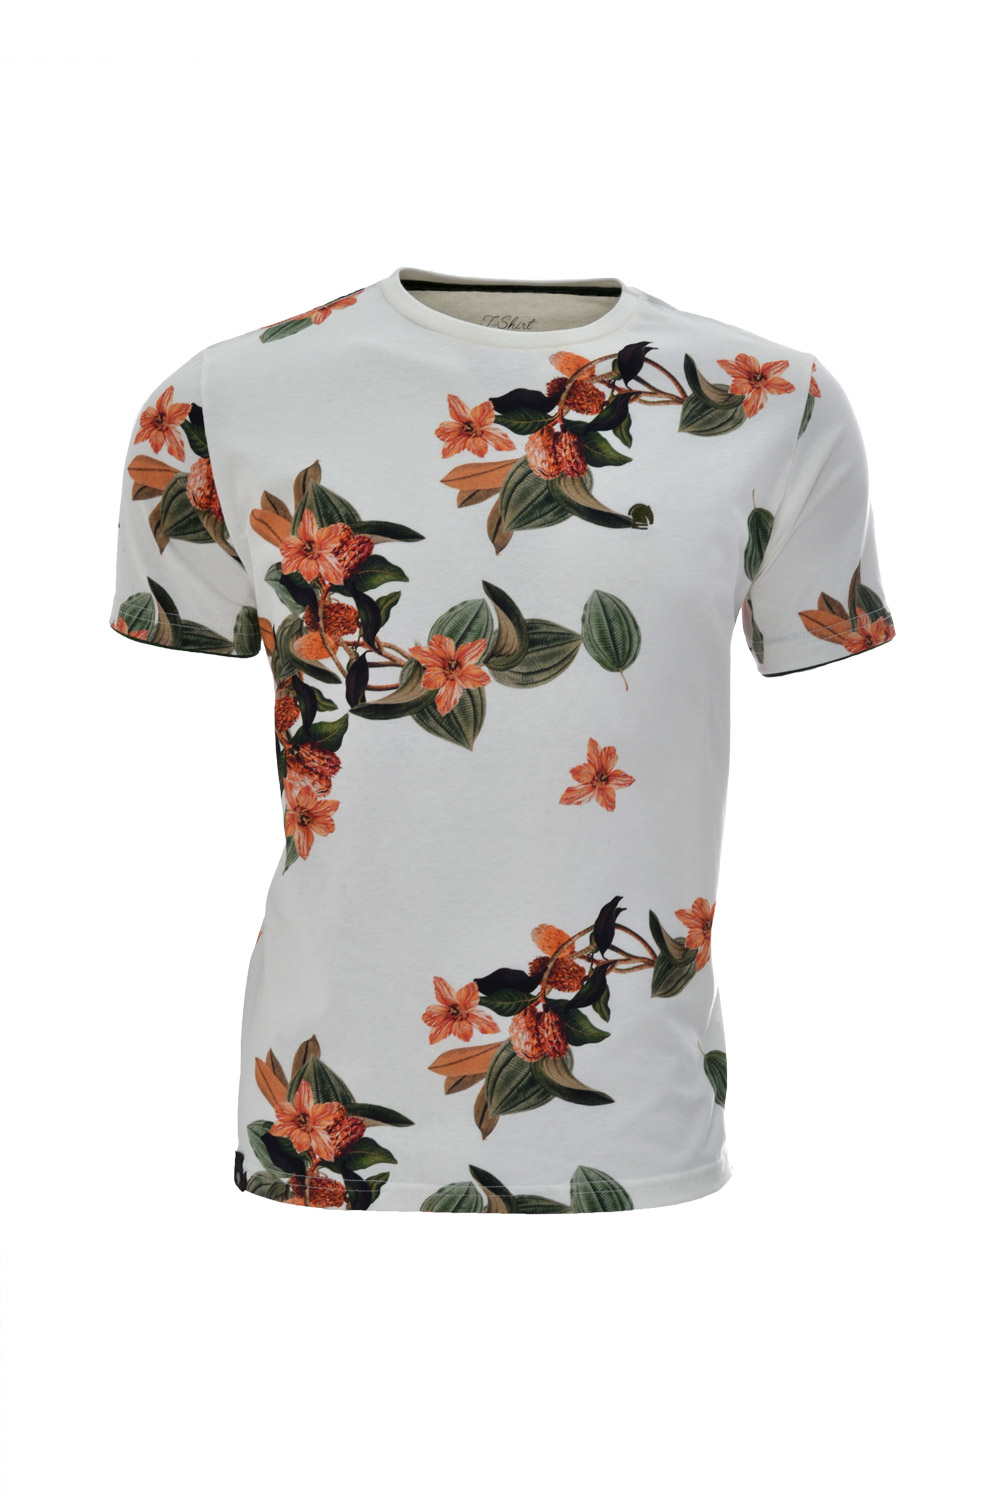 CAMISETA MC BLUES SUPER SLIM ALGODAO GOLA C FLORAL BRANCO